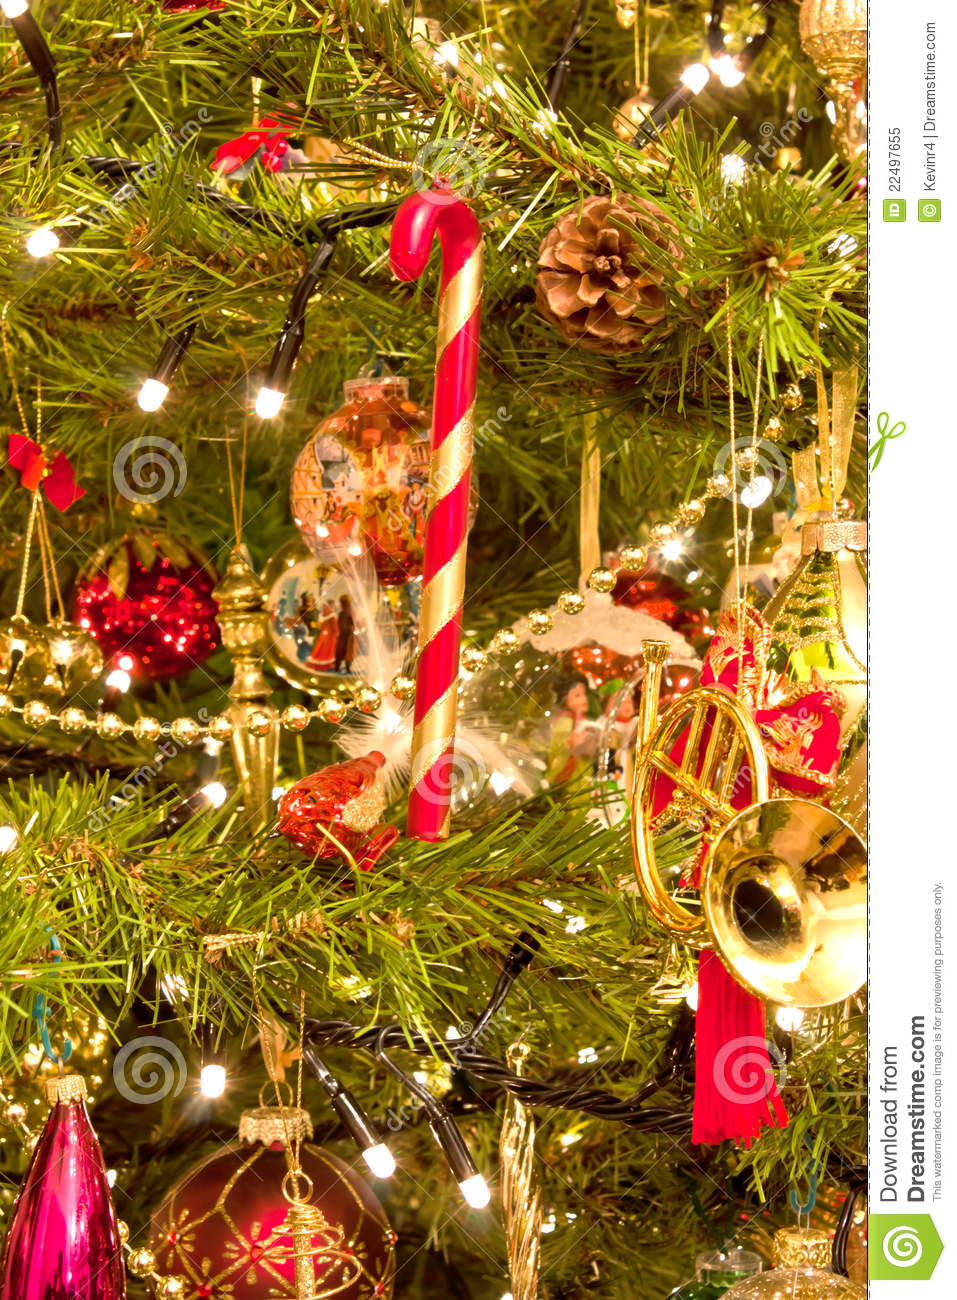 A Christmas Tree Full Of Decorations Royalty Free Stock